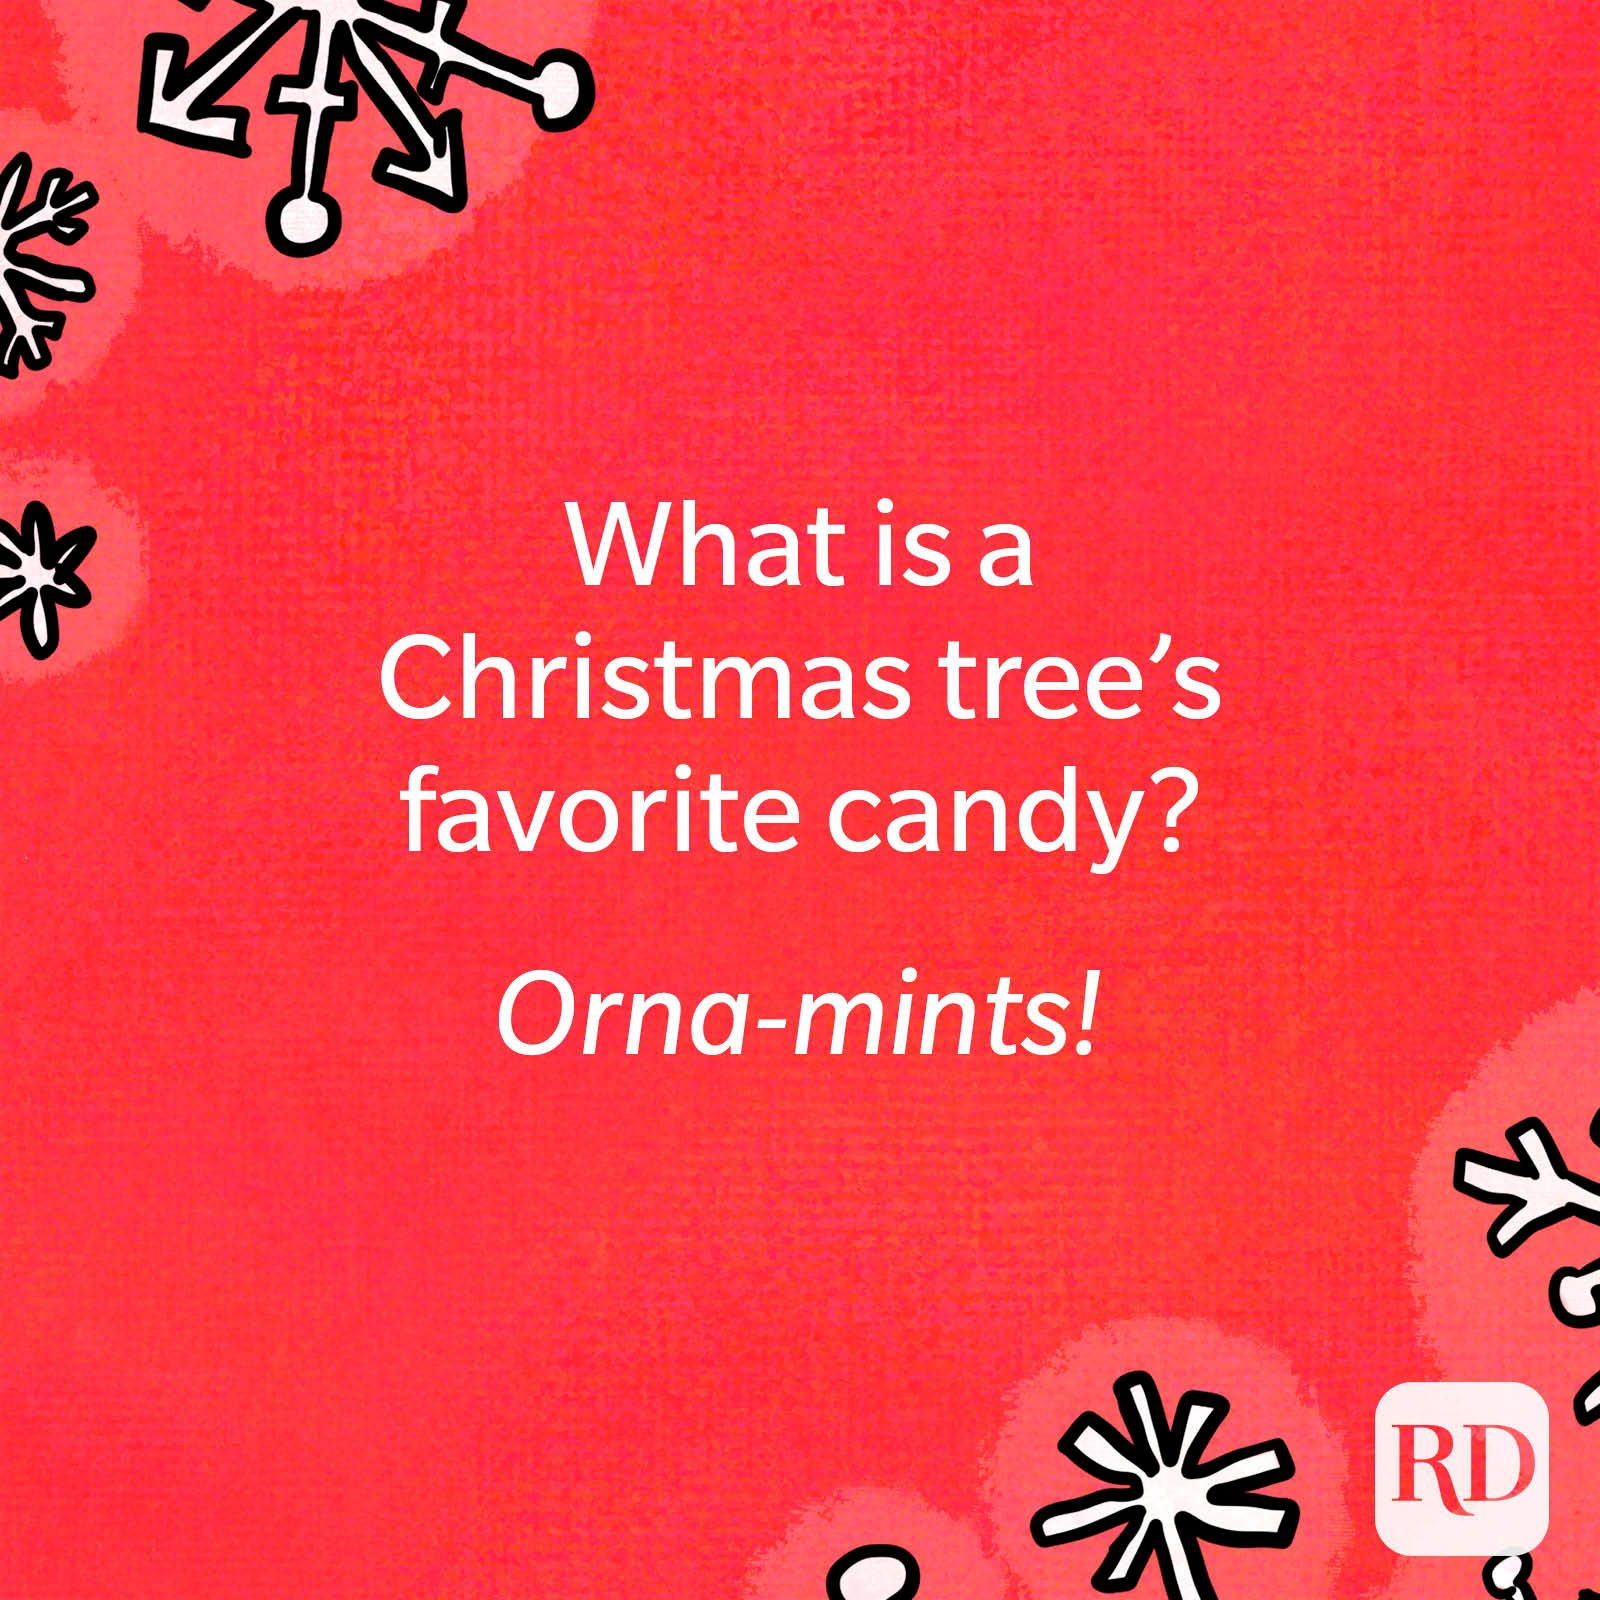 What is a Christmas tree's favorite candy?